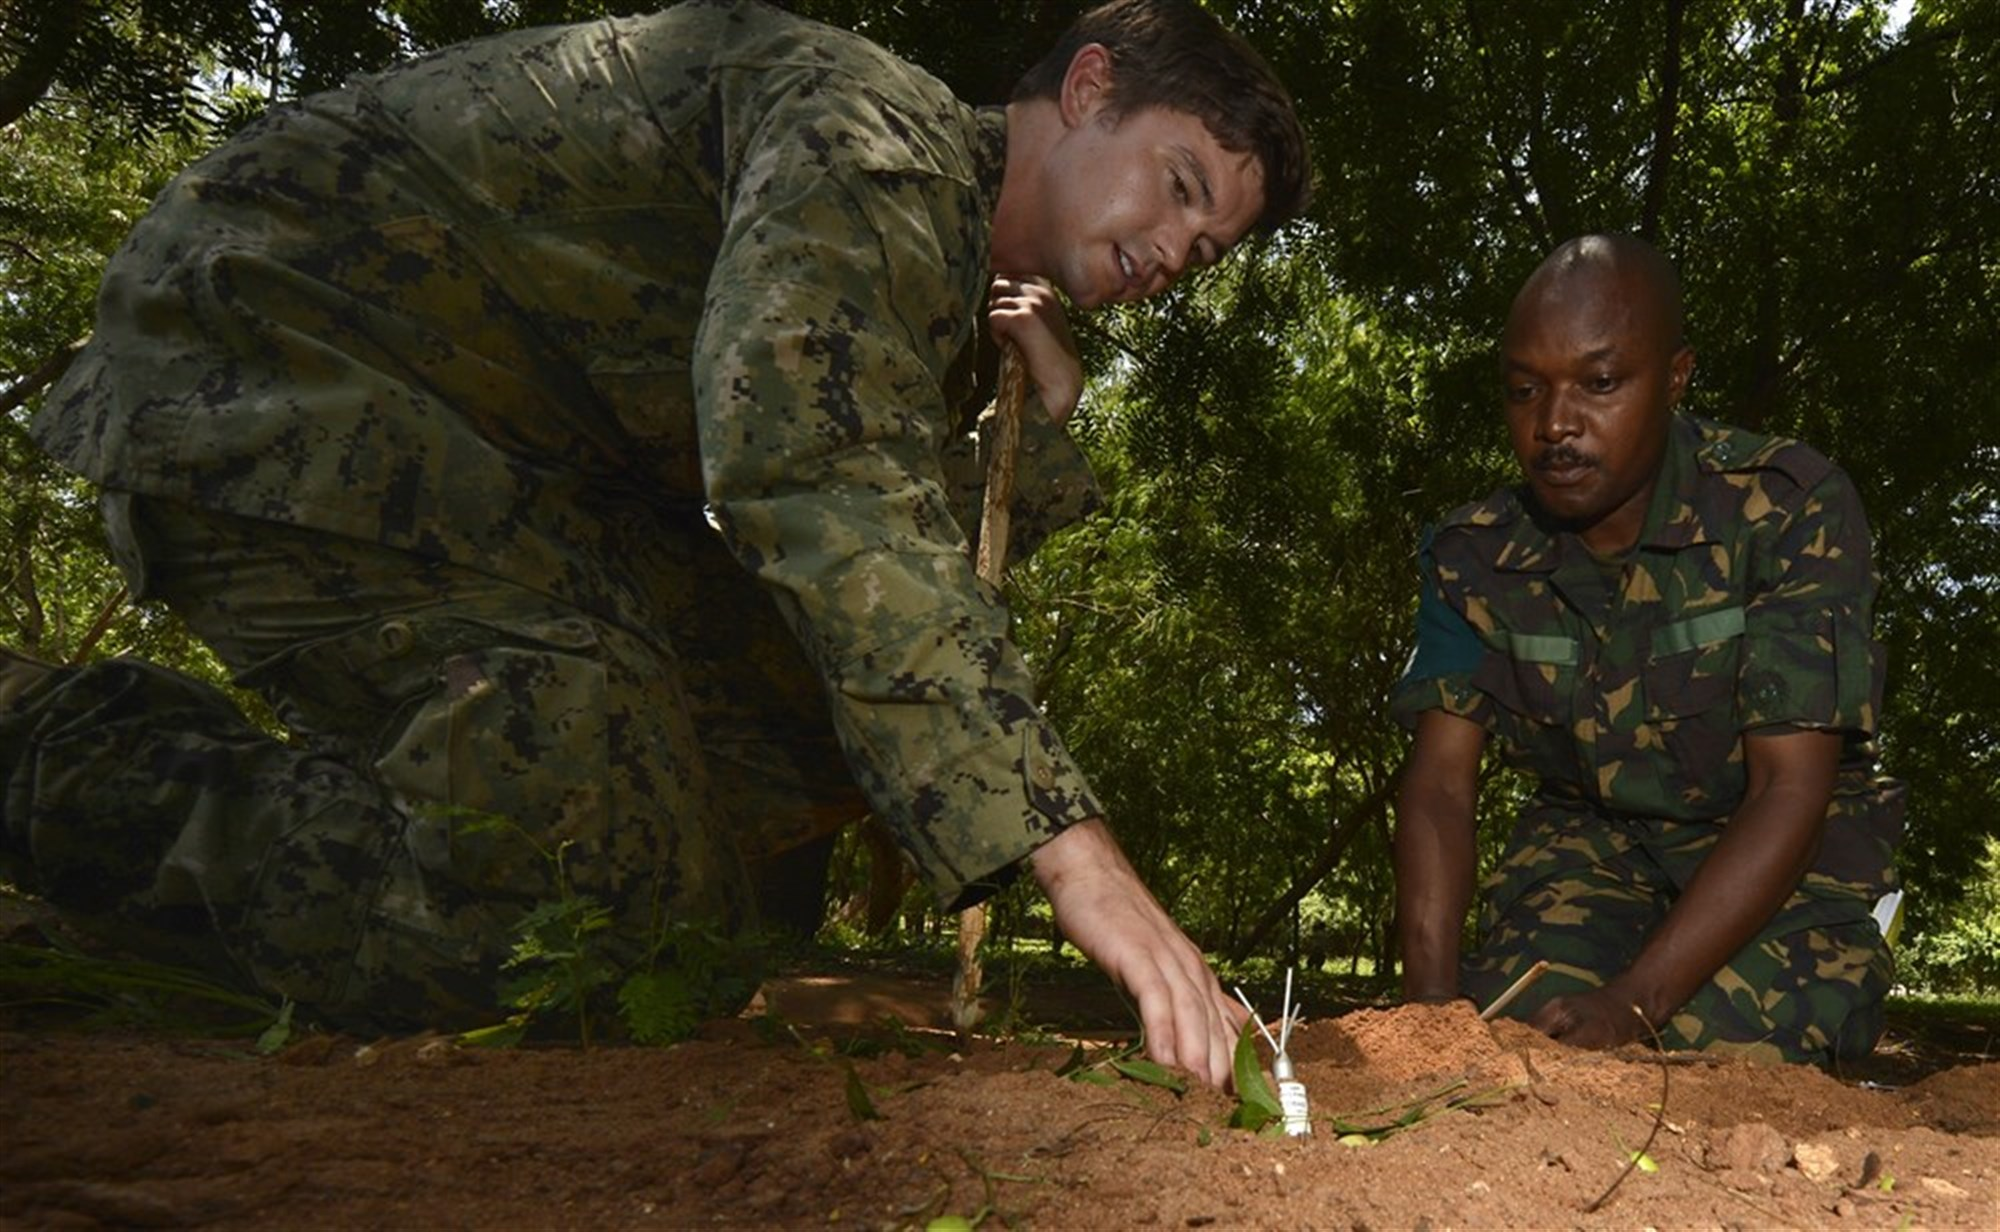 Explosive Ordnance Disposal Technician 3rd Class Andrews, EOD Mobile Unit 1, shows a member of the Tanzania People's Defence Force how to safely remove simulated unexploded landmines during the practical exercise portion of Humanitarian Mine Action Level 1 training in Dar es Salaam, Tanzania, Feb. 17, 2016. HMA activities include classroom instruction and practical exercises on detecting and clearing landmines, identifying and disposing of explosive remnants, and providing physical security and stockpile management.  (U.S. Air Force photo by Tech. Sgt. Dan DeCook)